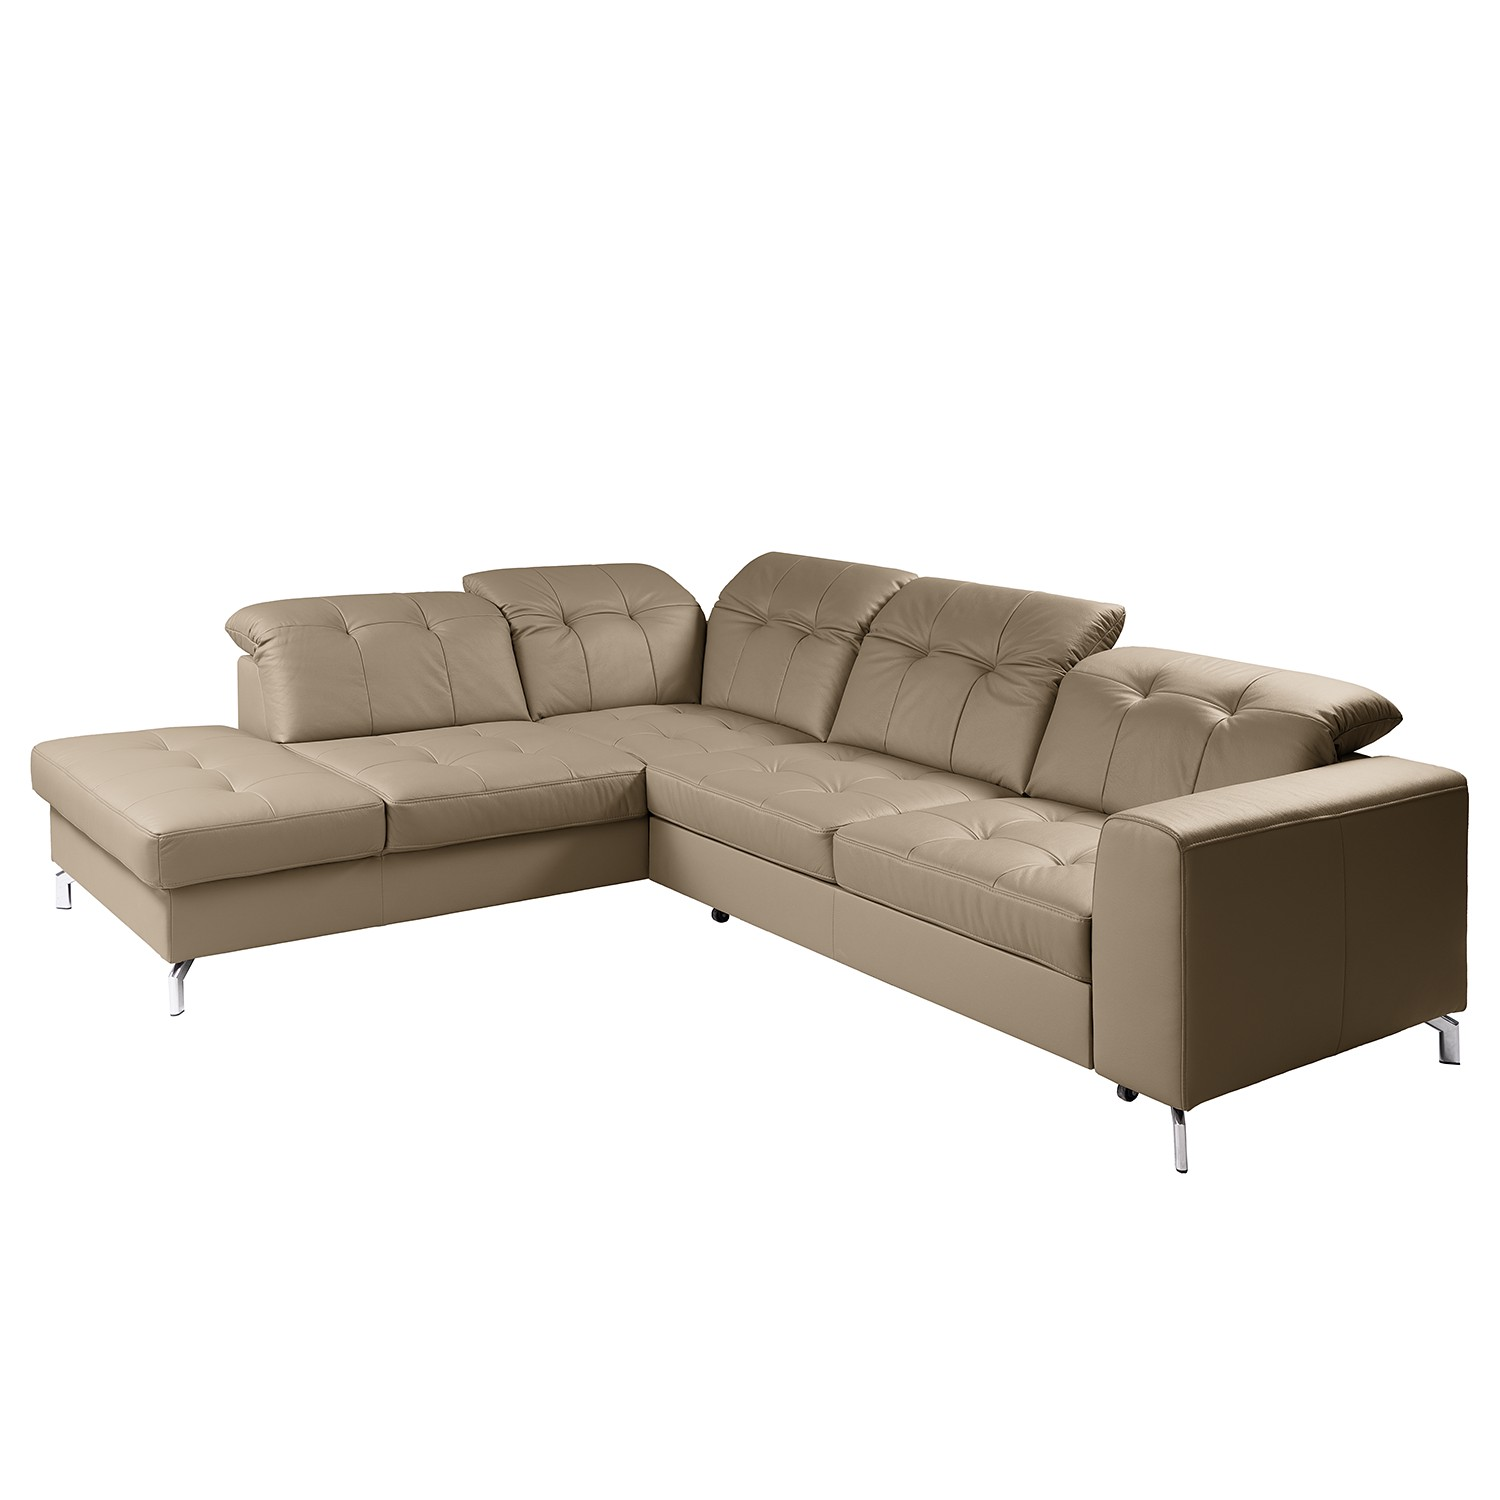 home24 Ecksofa White Pine